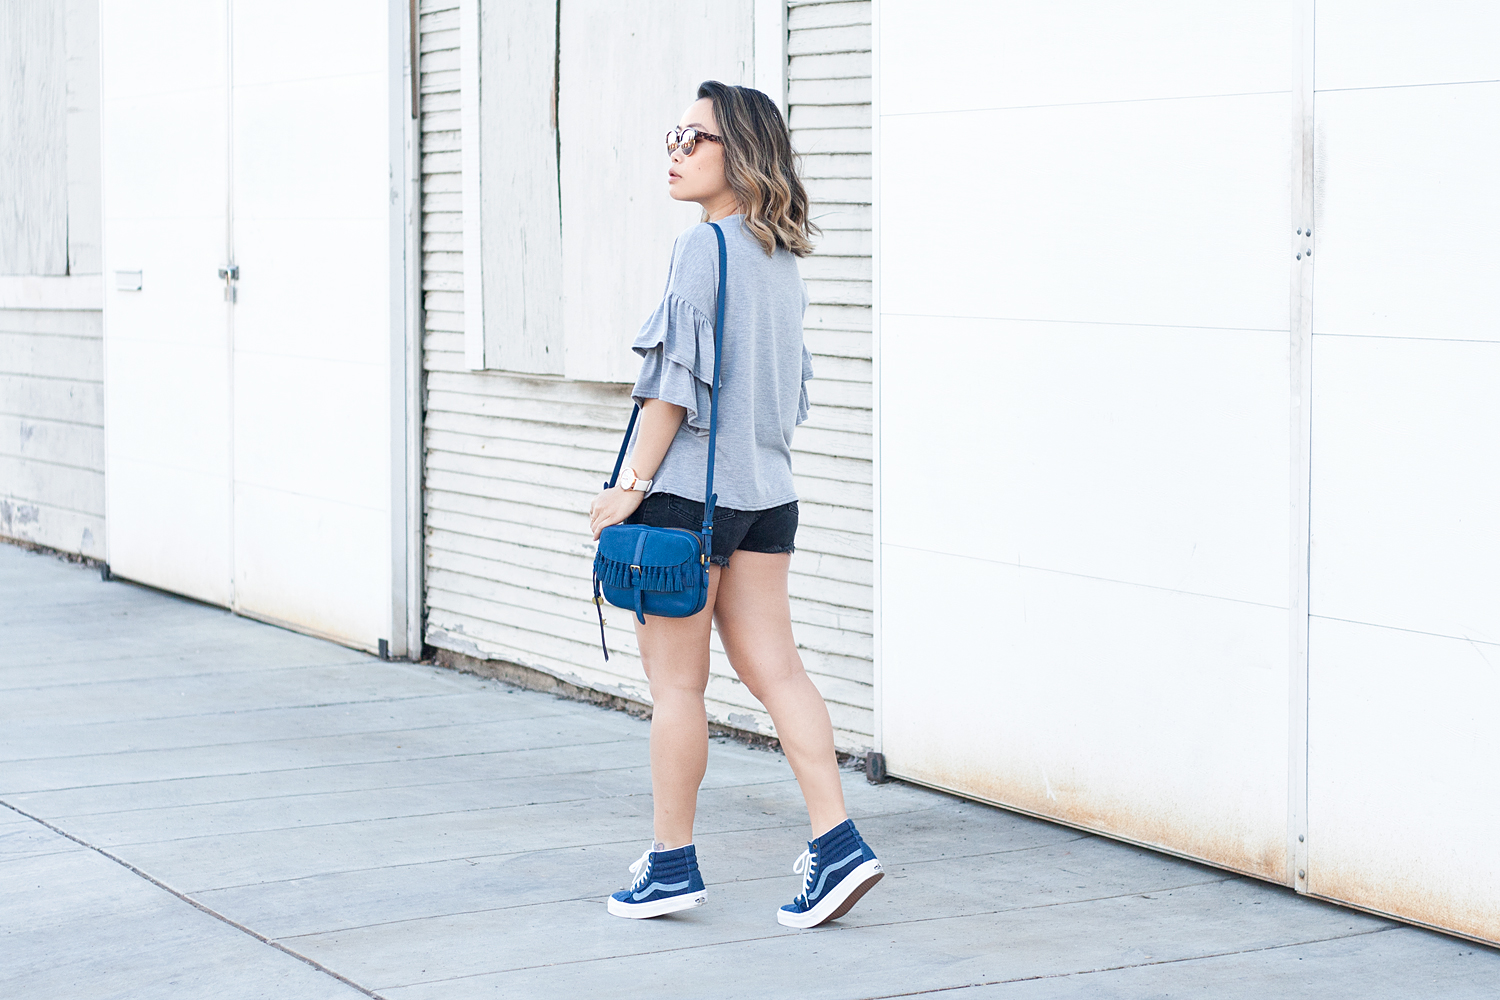 09fossil-blue-madewell-vans-denim-sf-fashion-style